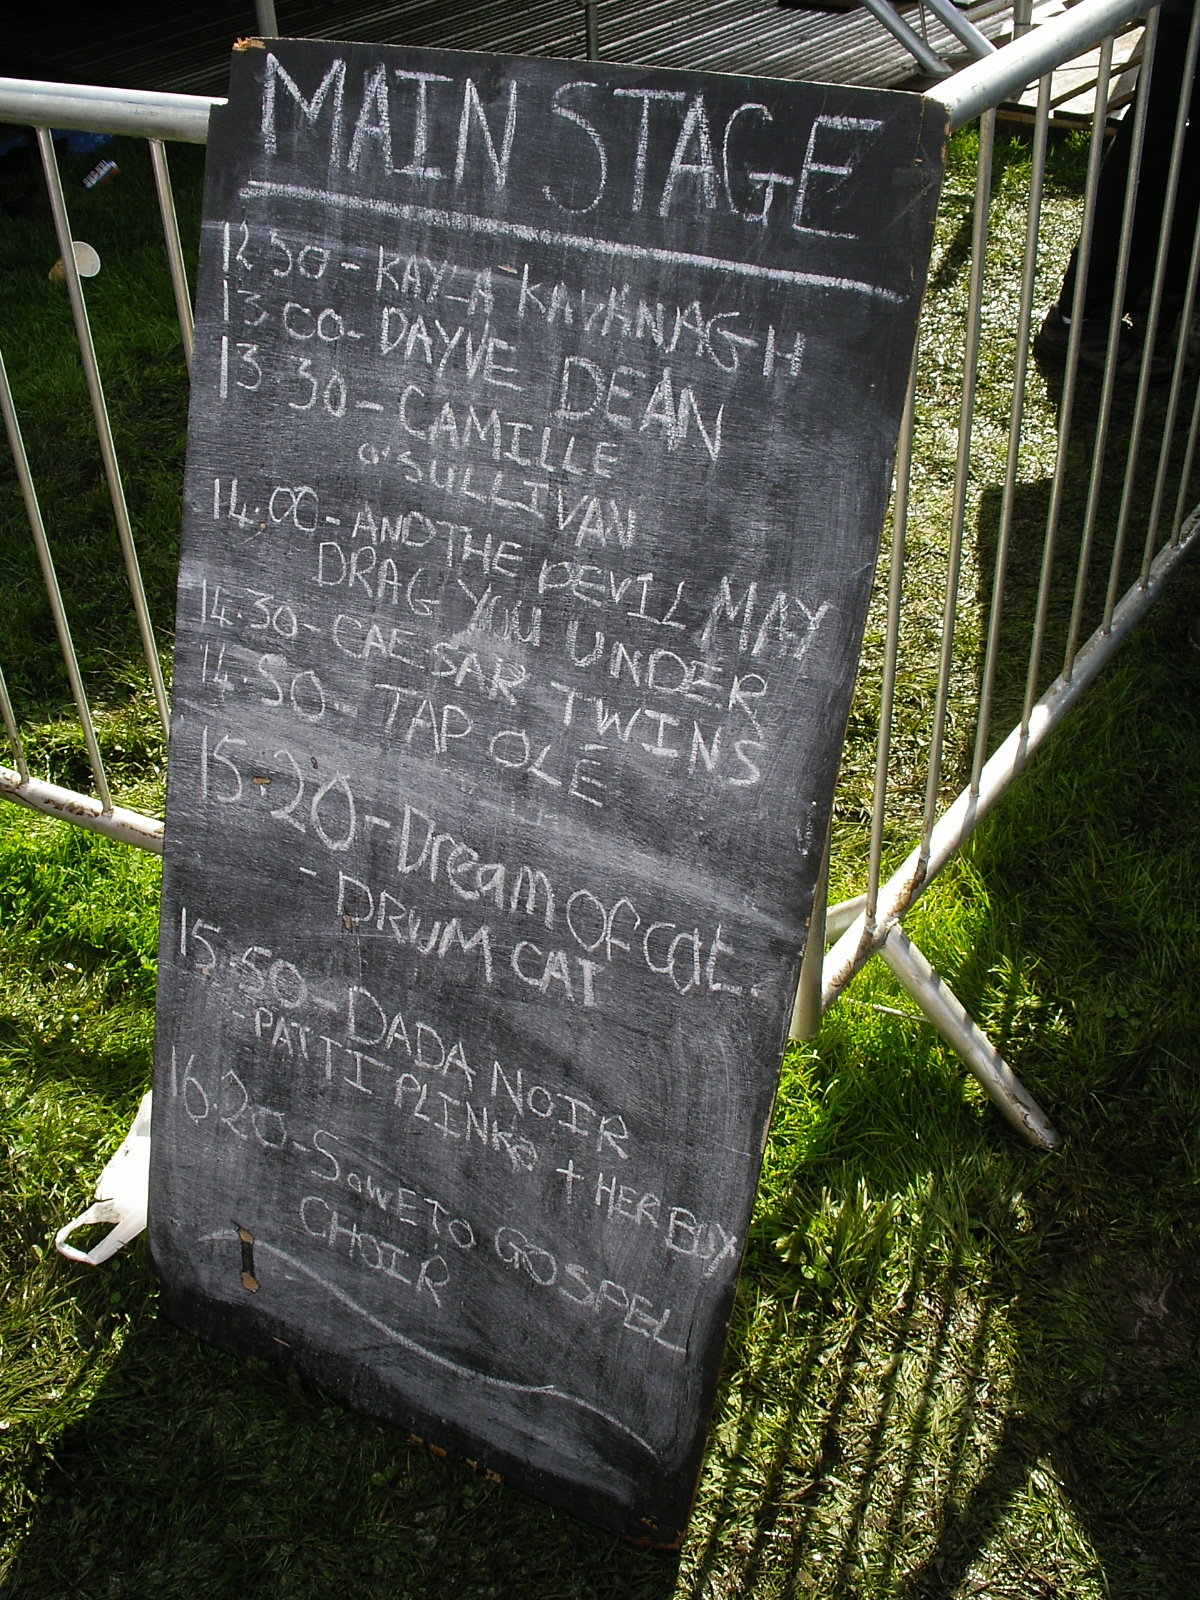 Black board programme of main stage on Fringe Sunday